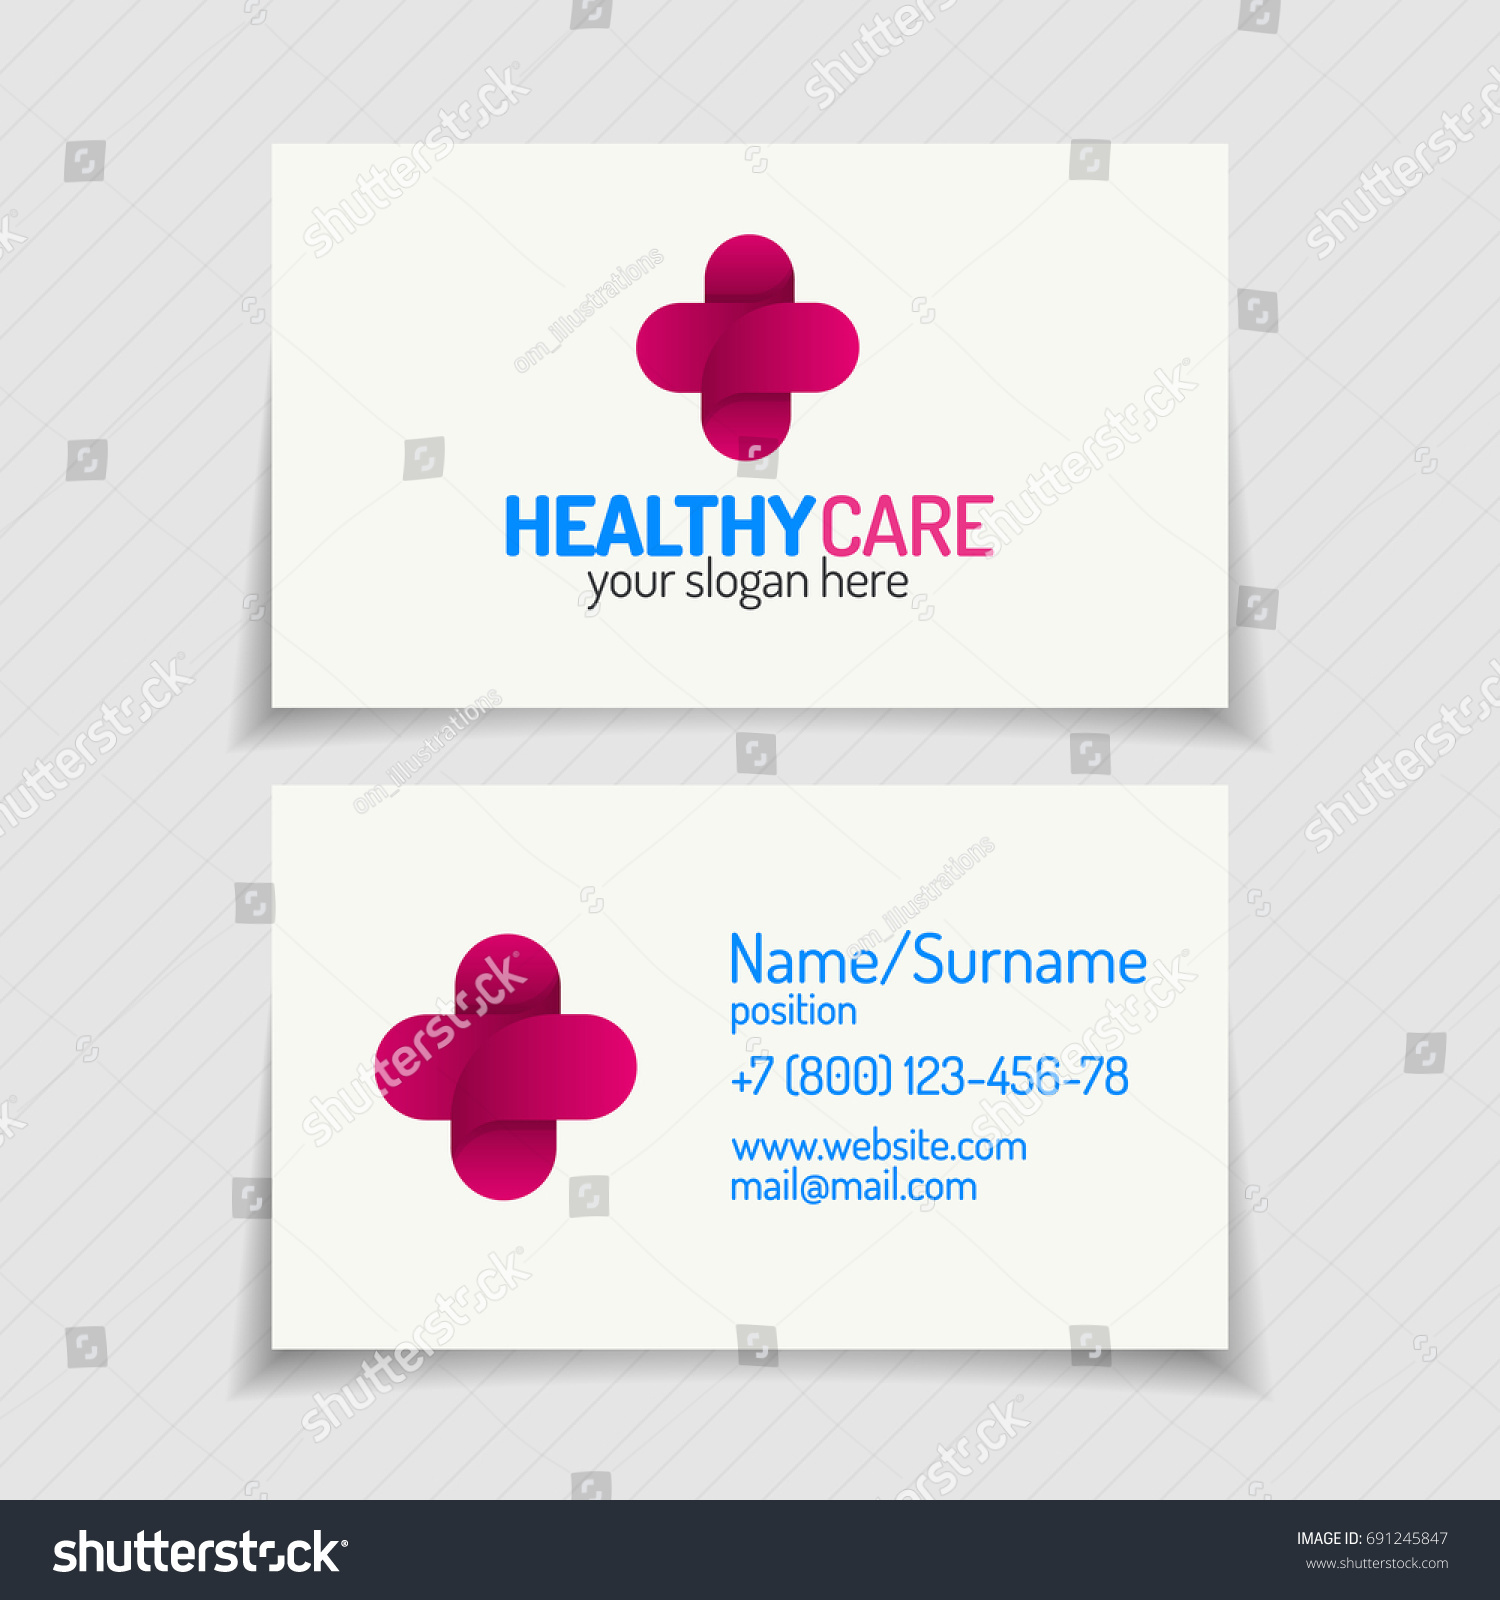 Business card cross logo color modern stock illustration 691245847 business card with cross logo color modern style for use medical company family medicine practice magicingreecefo Images